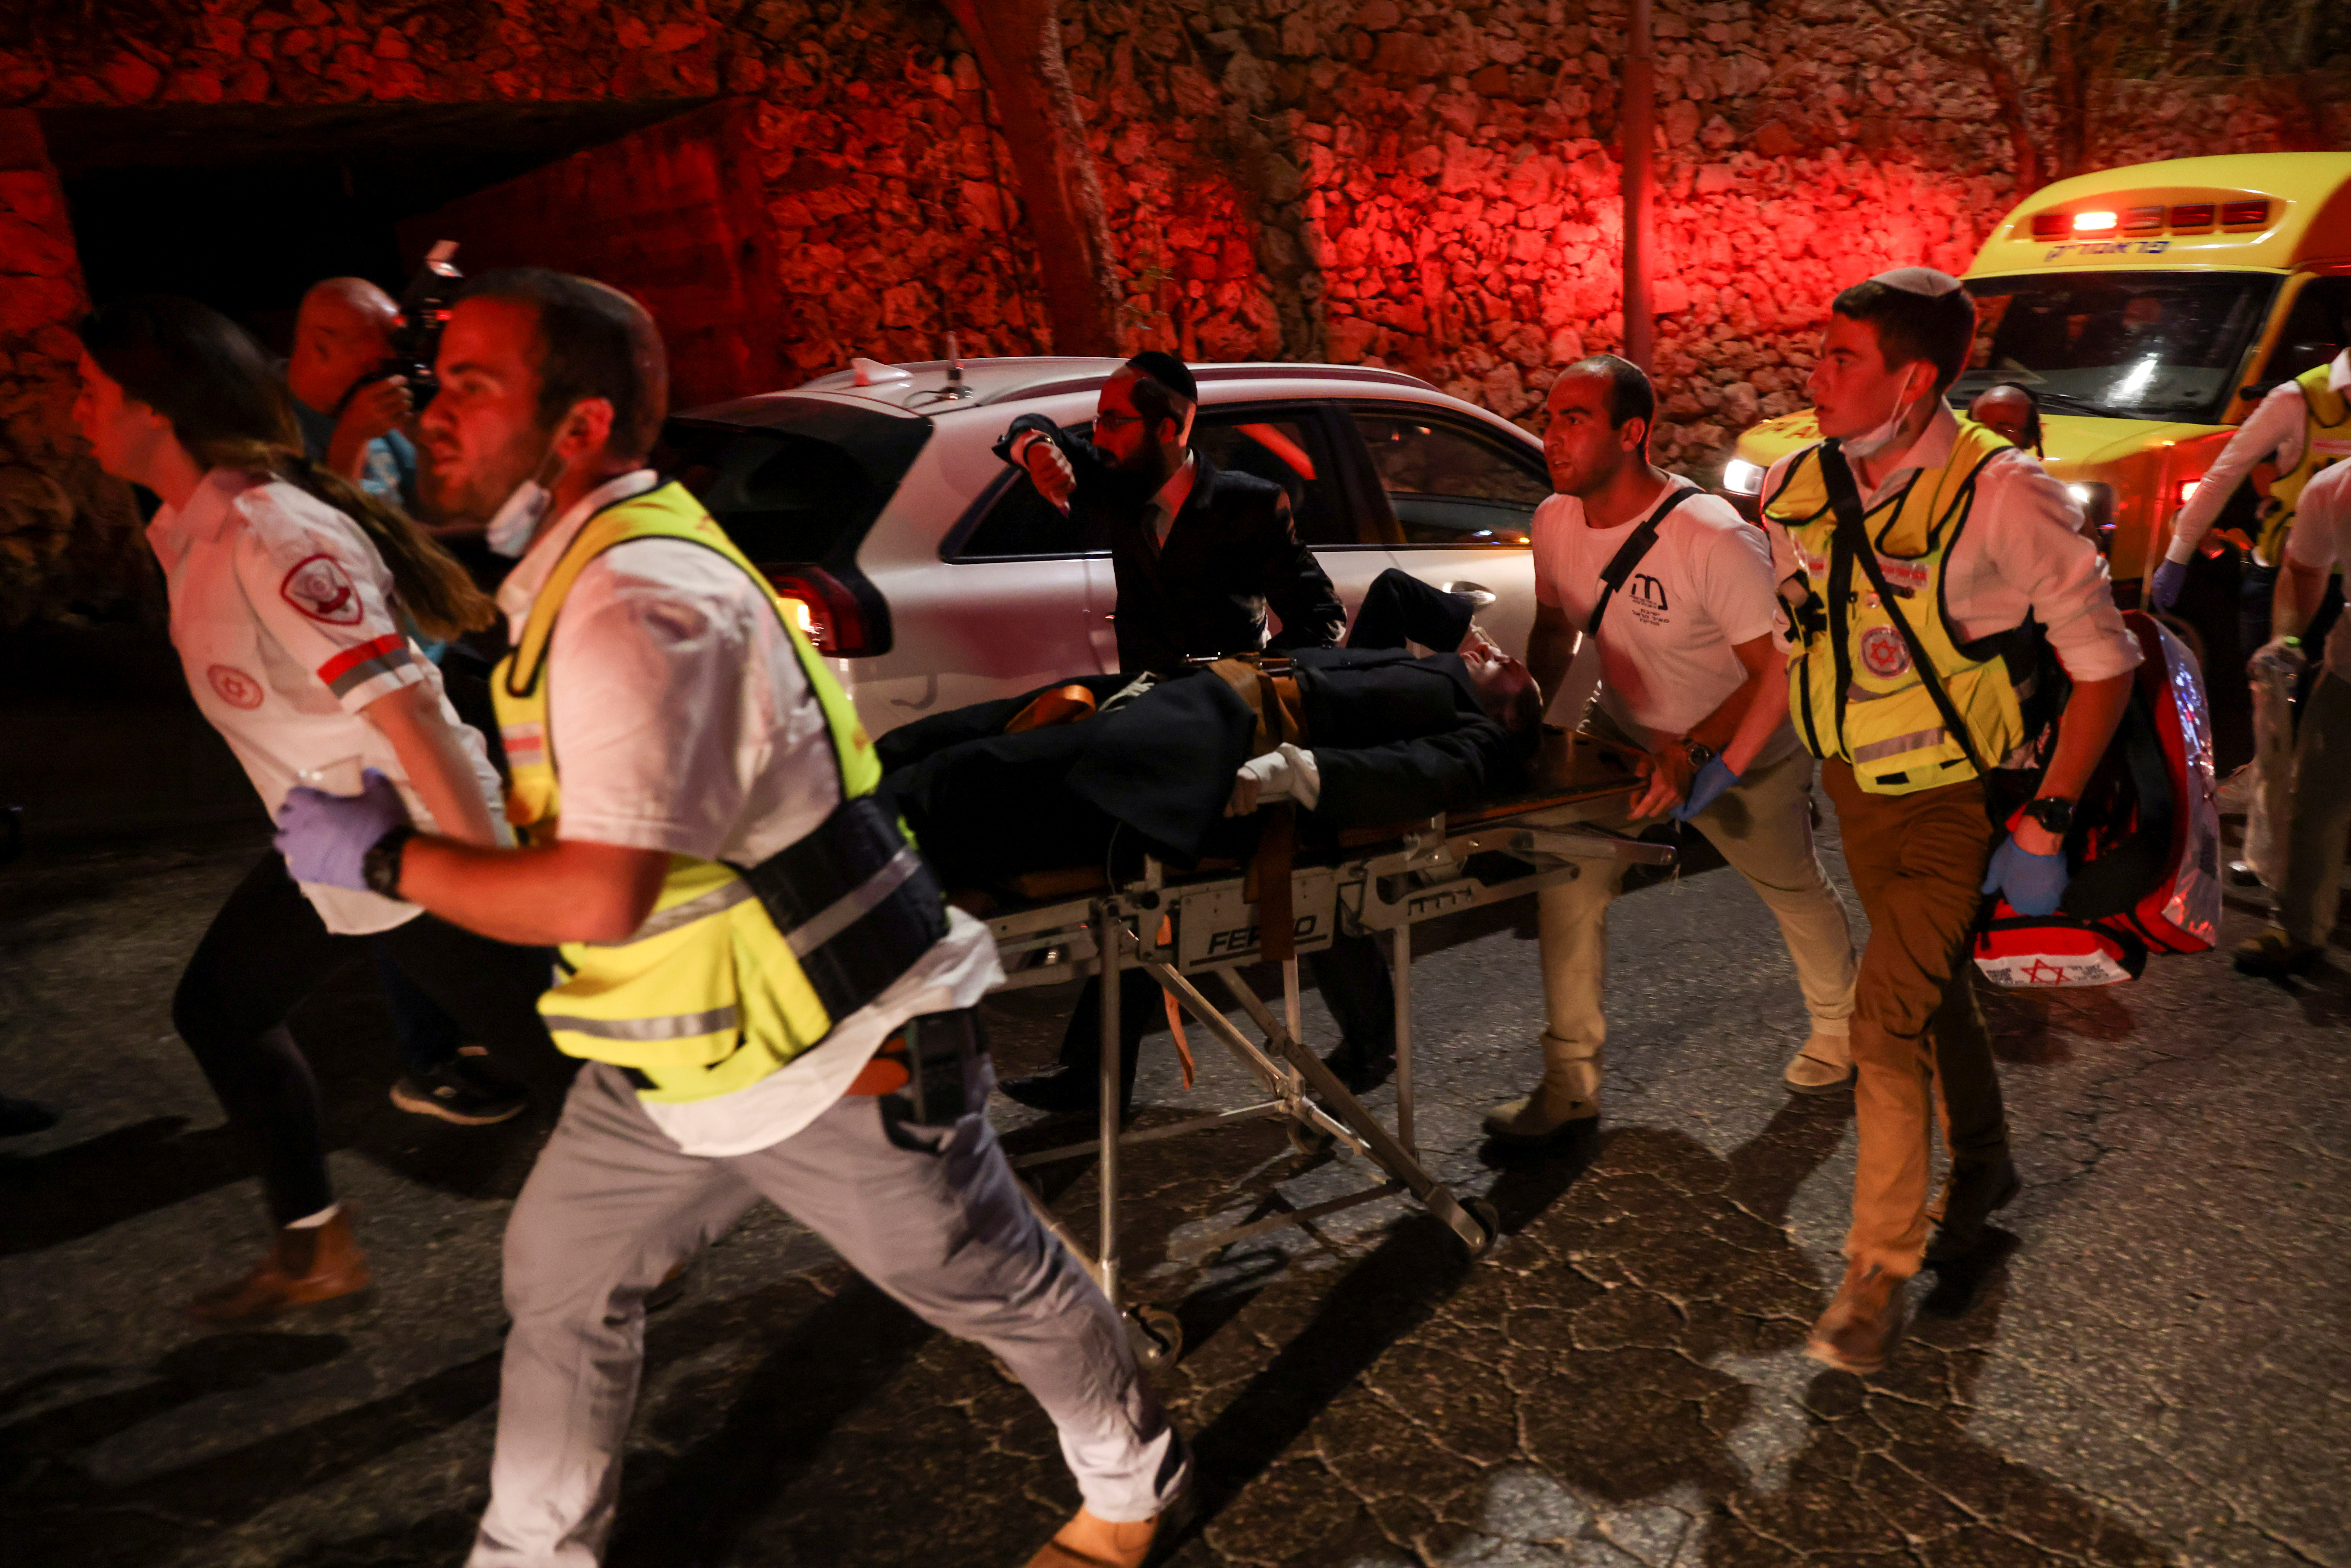 Rescue workers transport on a stretcher injured people outside a synagogue where a grandstand collapsed during a religious celebration in Givat Zeev, in the occupied West Bank, May 16, 2021. REUTERS/Ronen Zvulun